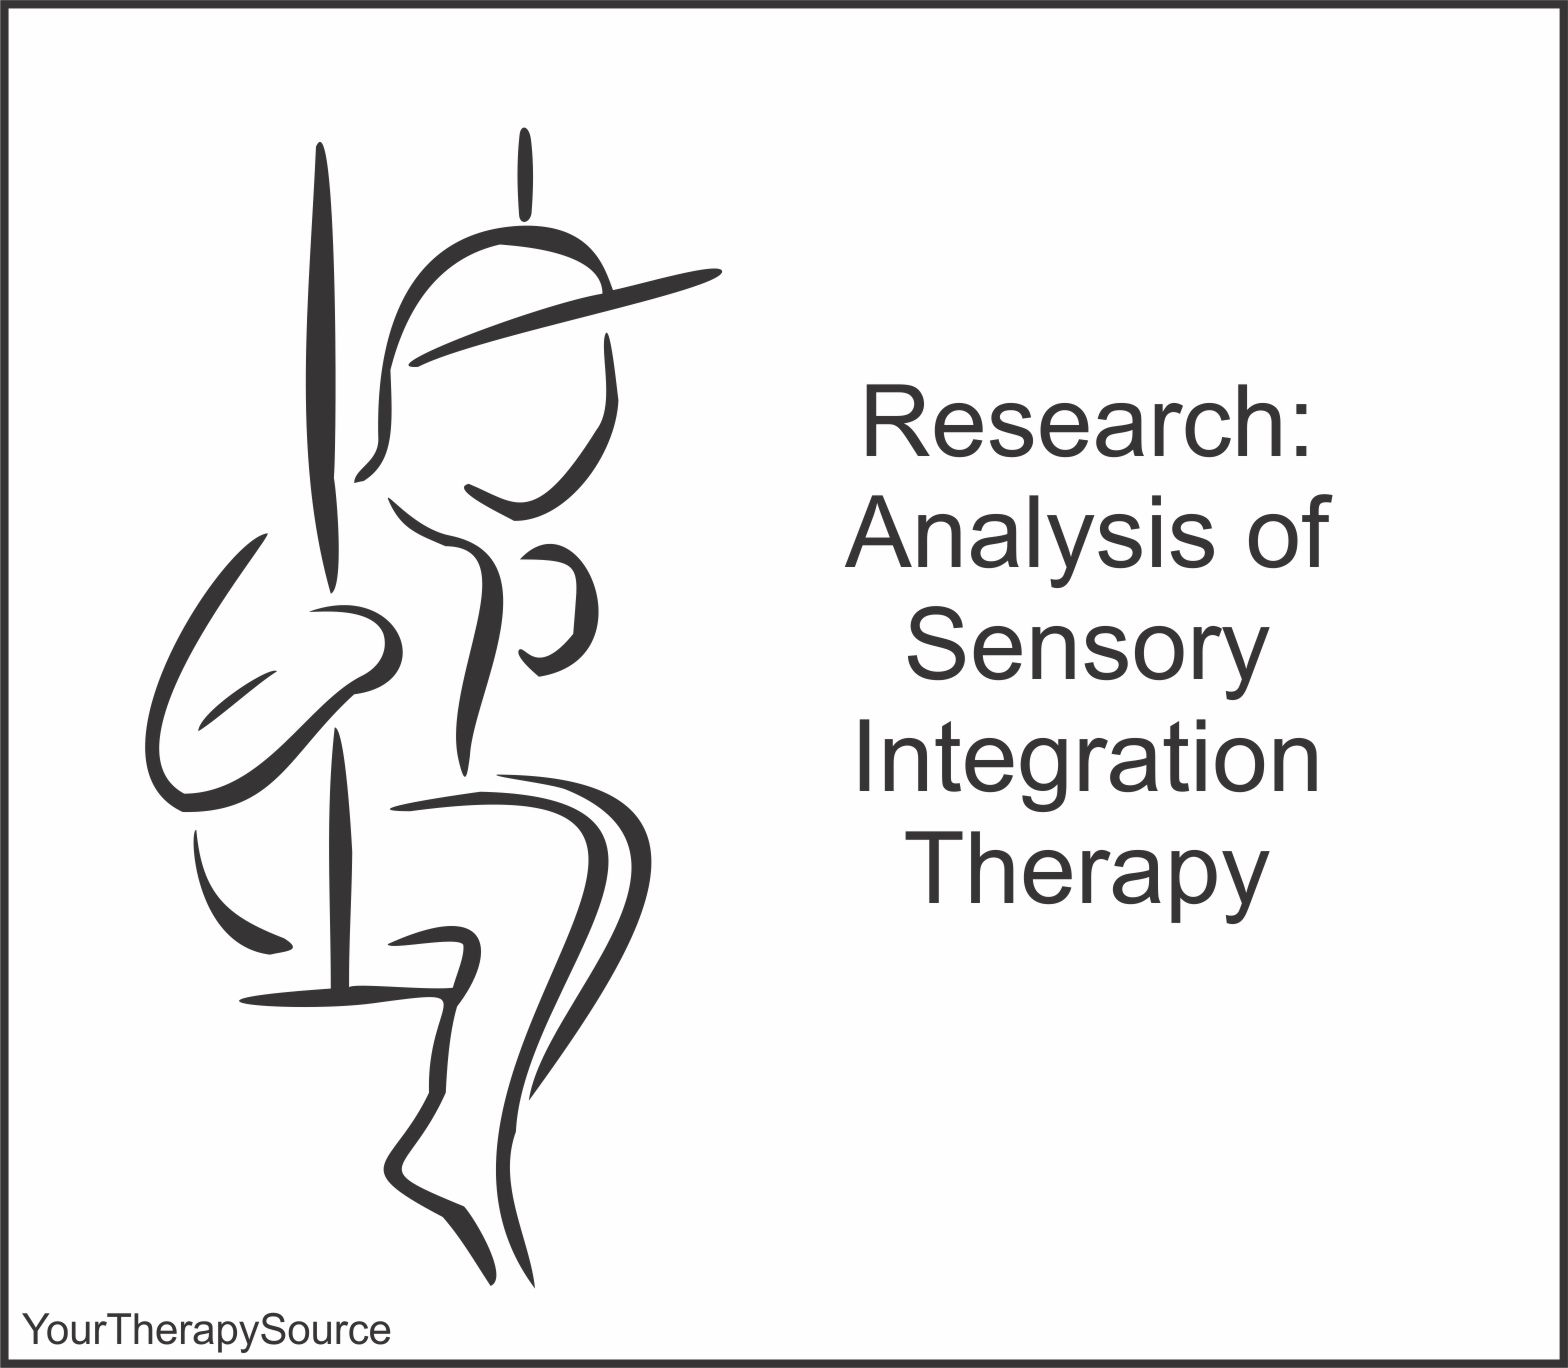 Research: Analysis of Sensory Integration Therapy